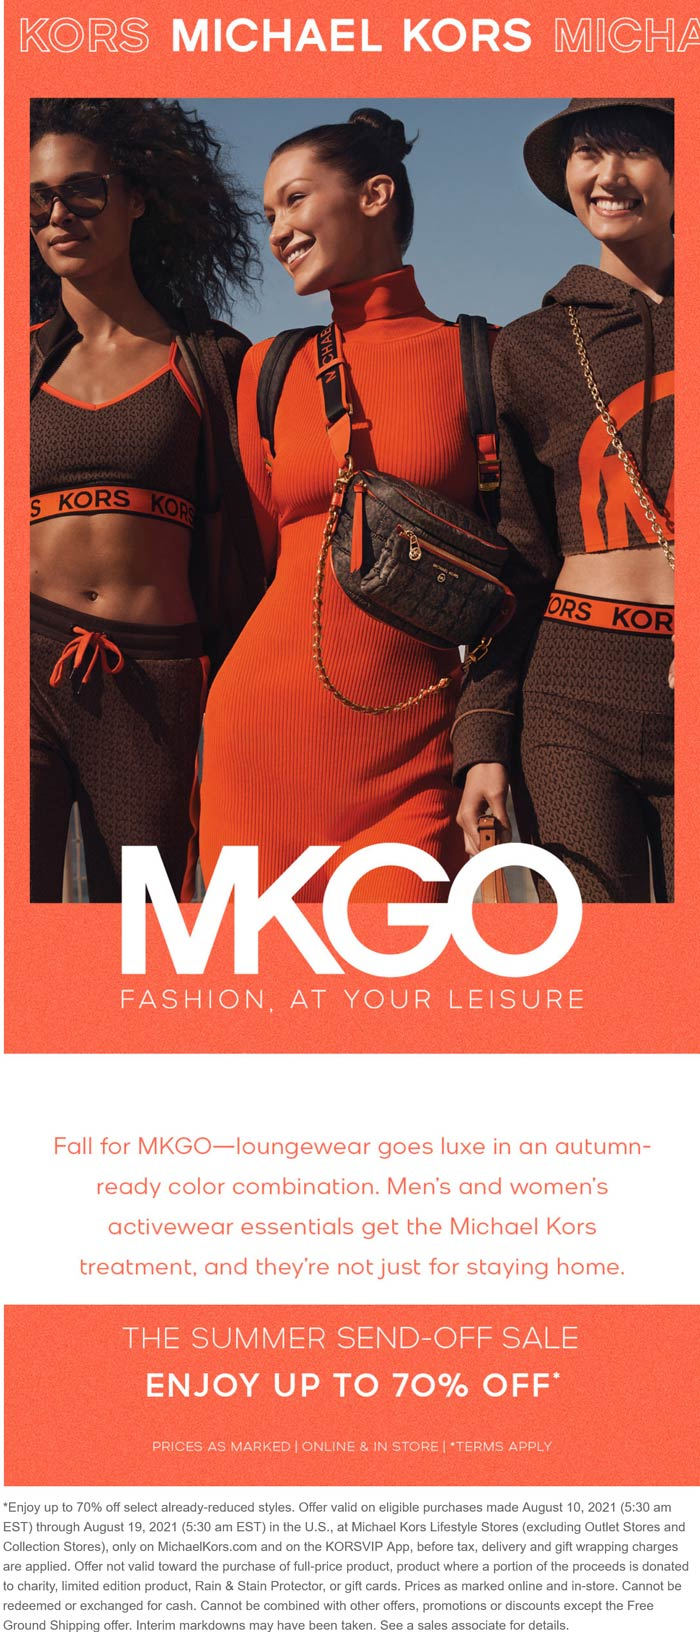 Michael Kors stores Coupon  70% off sale items clearance going on at Michael Kors ditto online #michaelkors